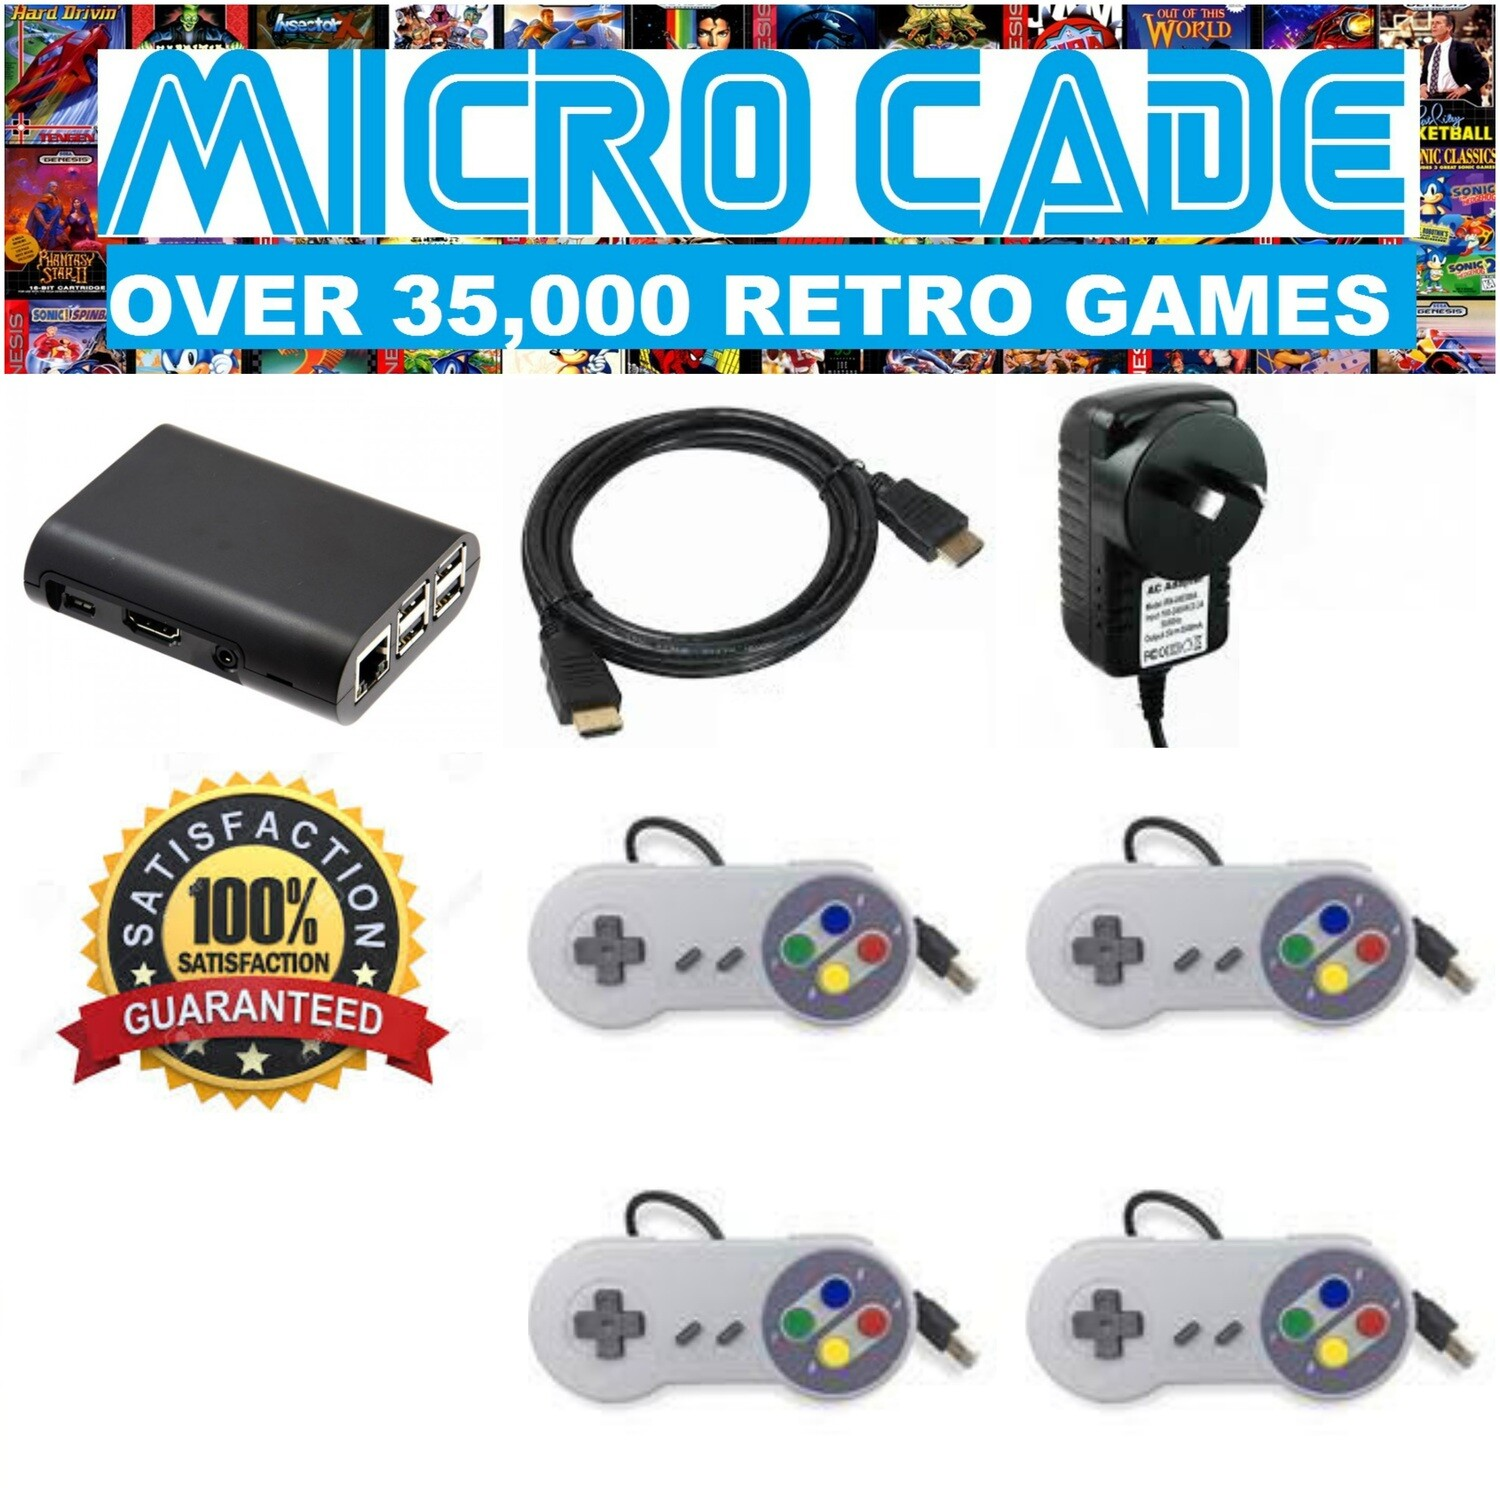 MICRO CADE OVER 35,000 RETRO GAMES, 4 X SNES CONTROLLERS